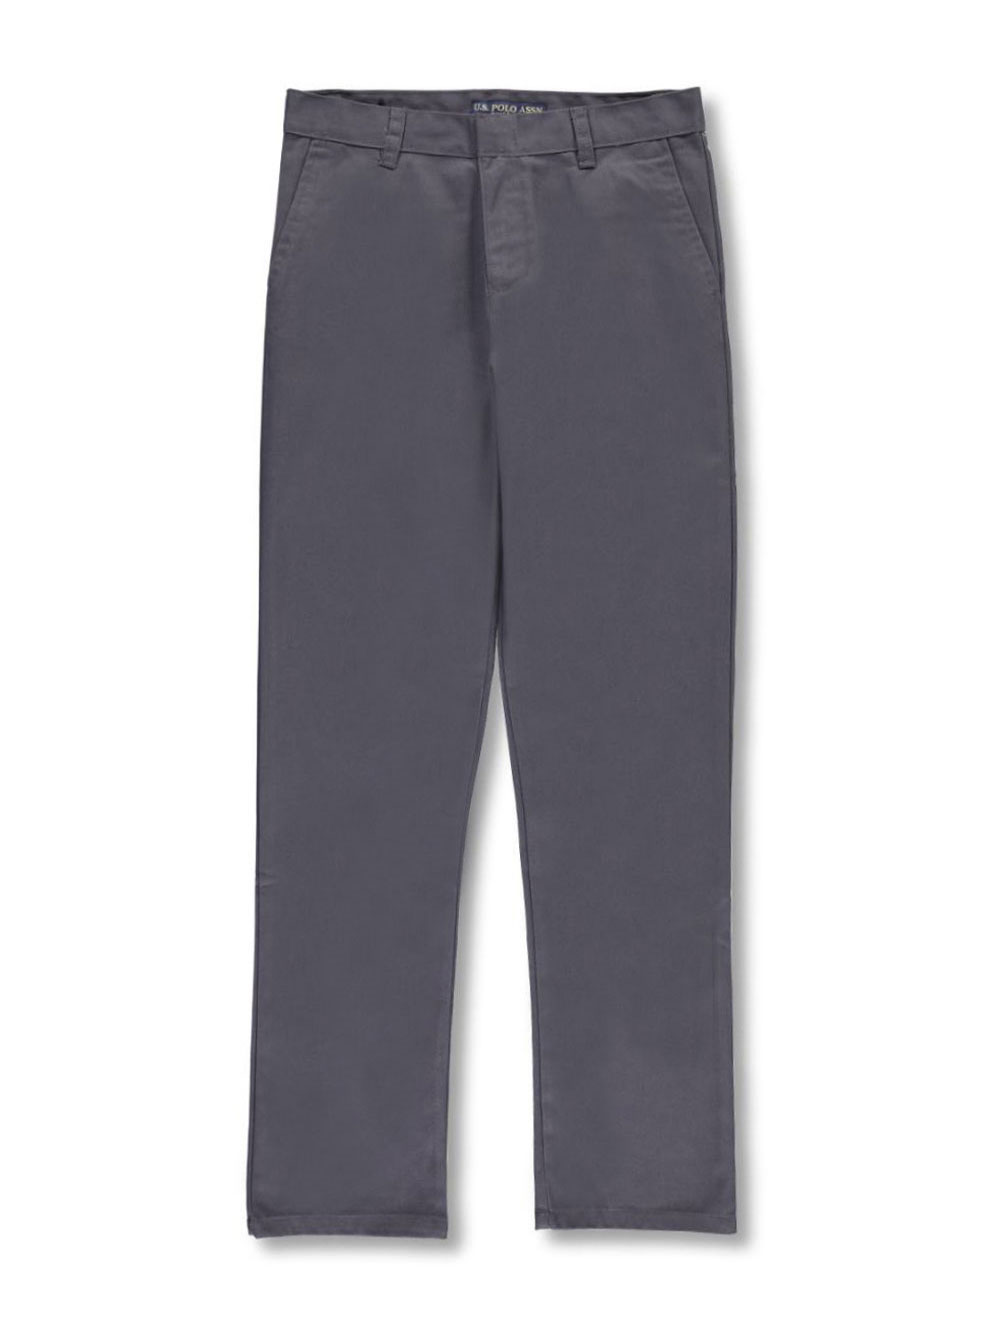 Big Boys' Flat Front Pants